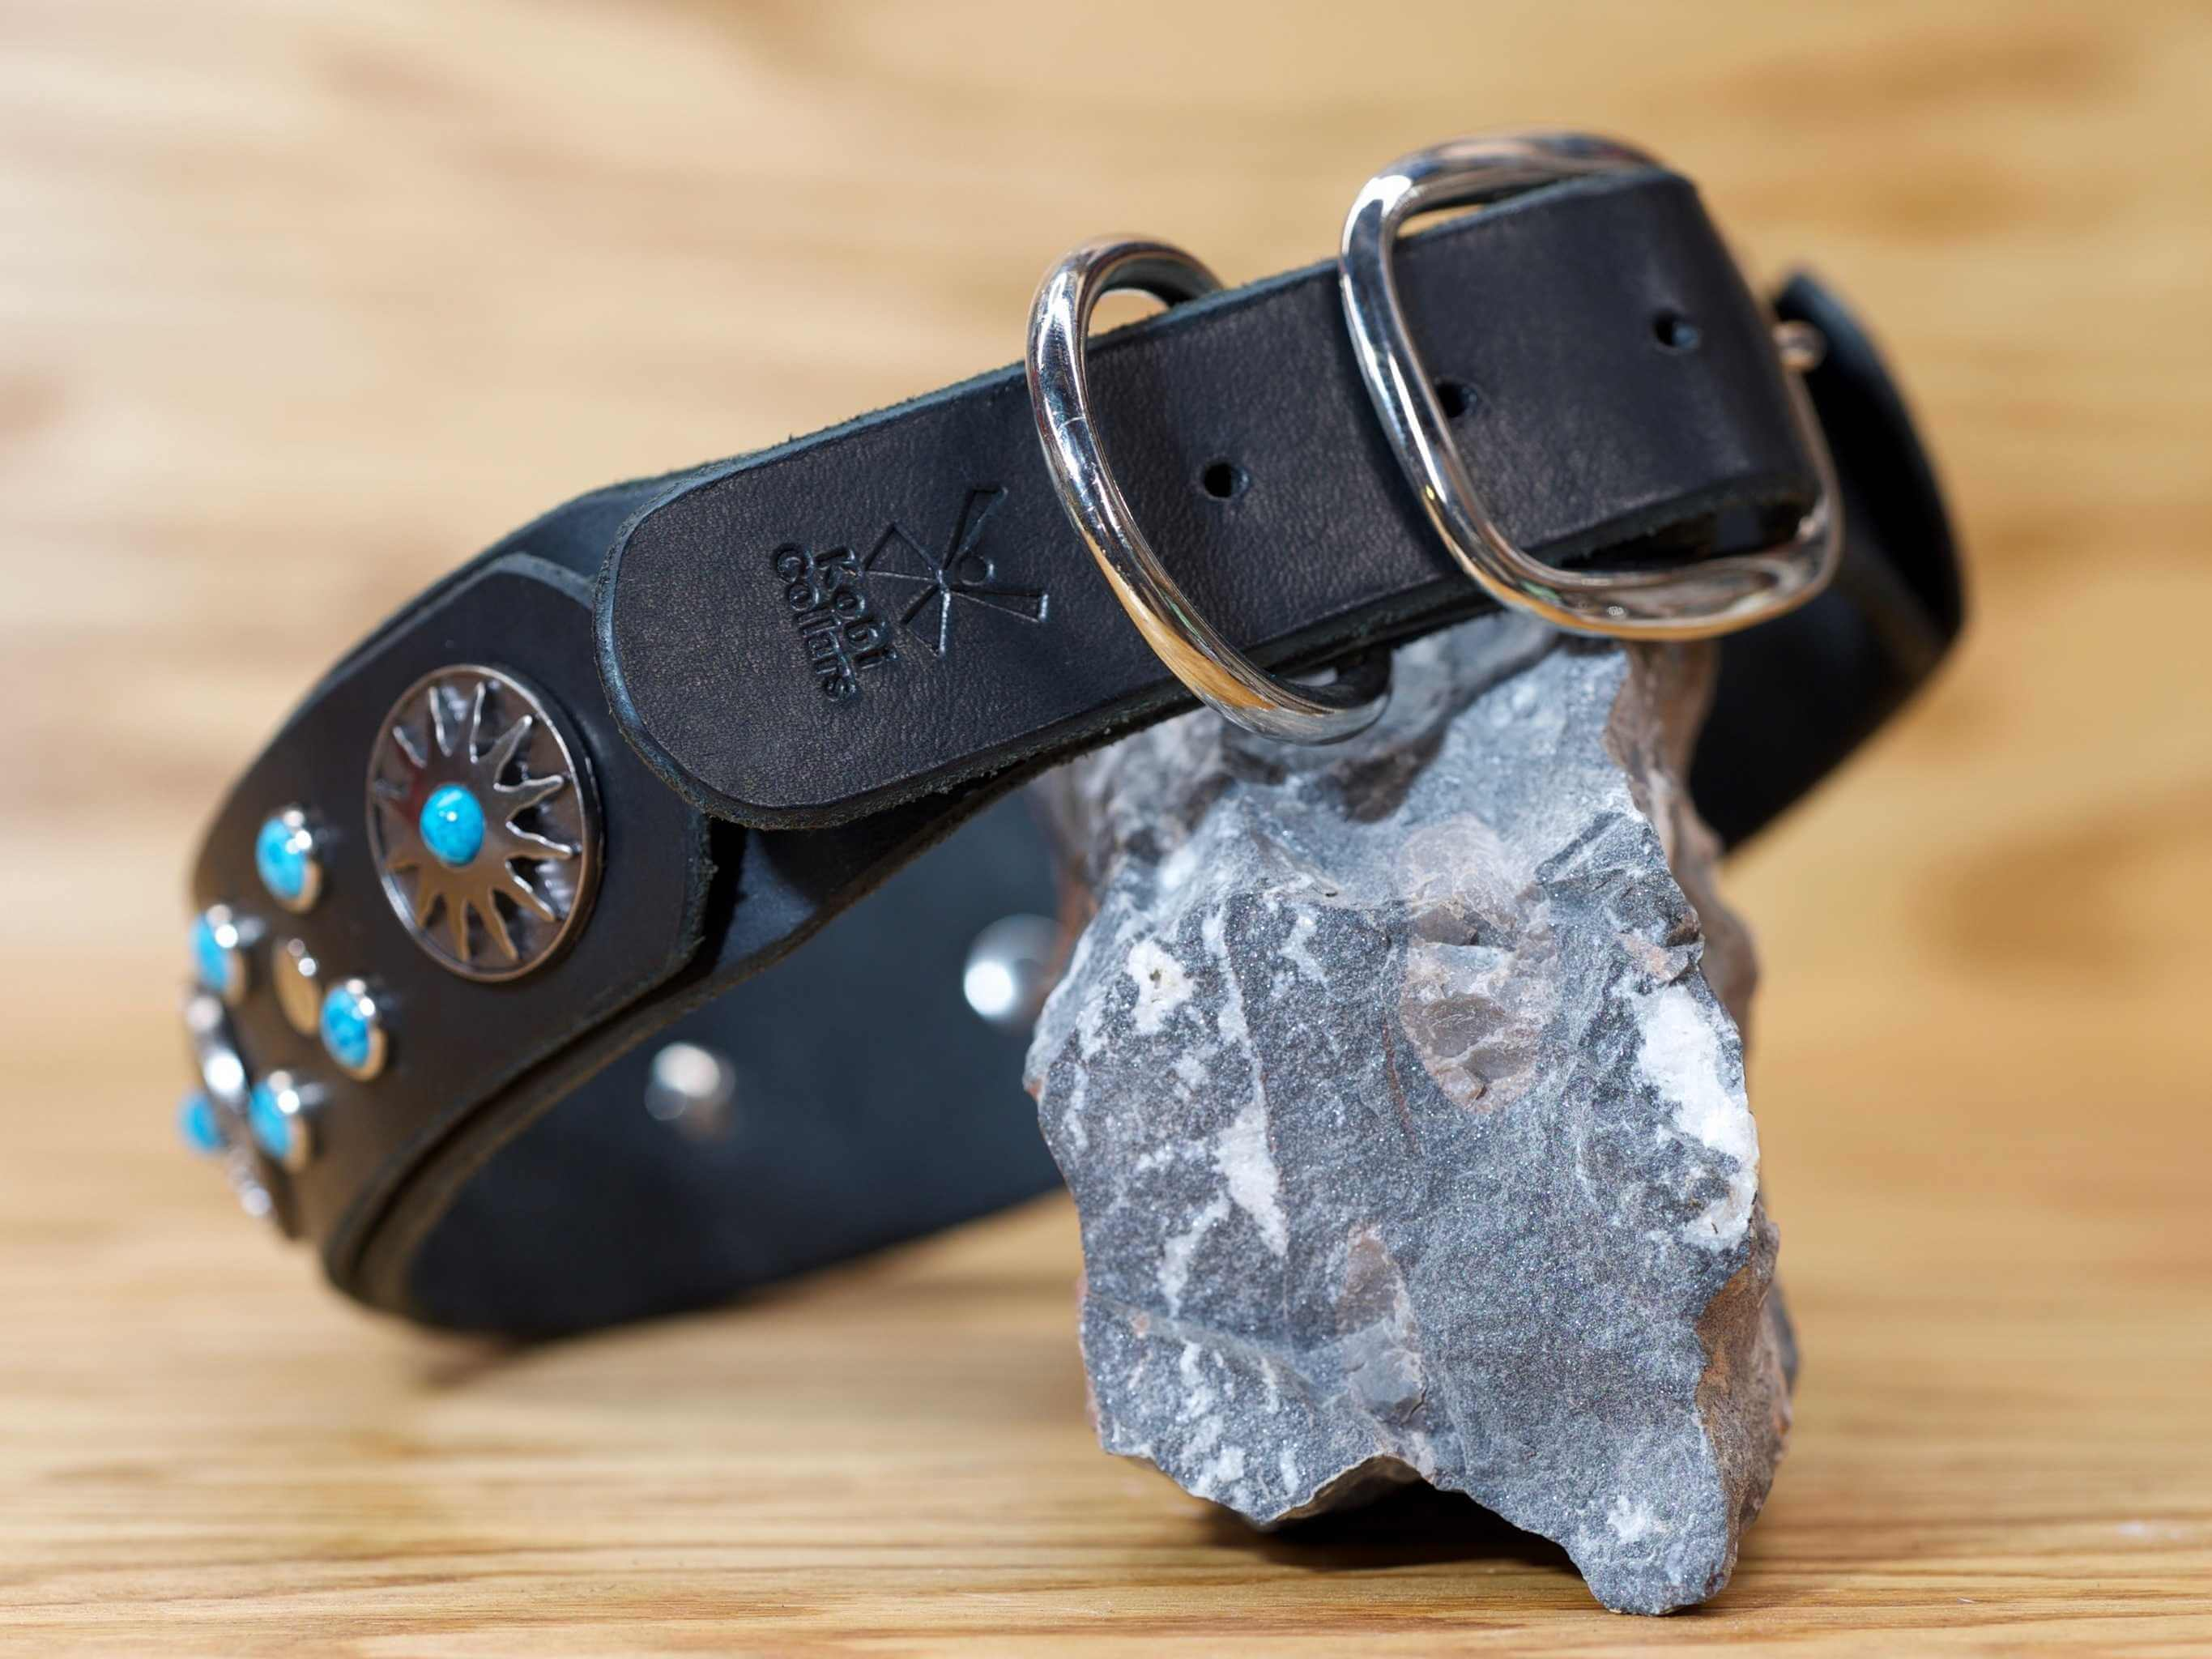 A stepped down buckle size makes this wide dog collar comfortable to wear